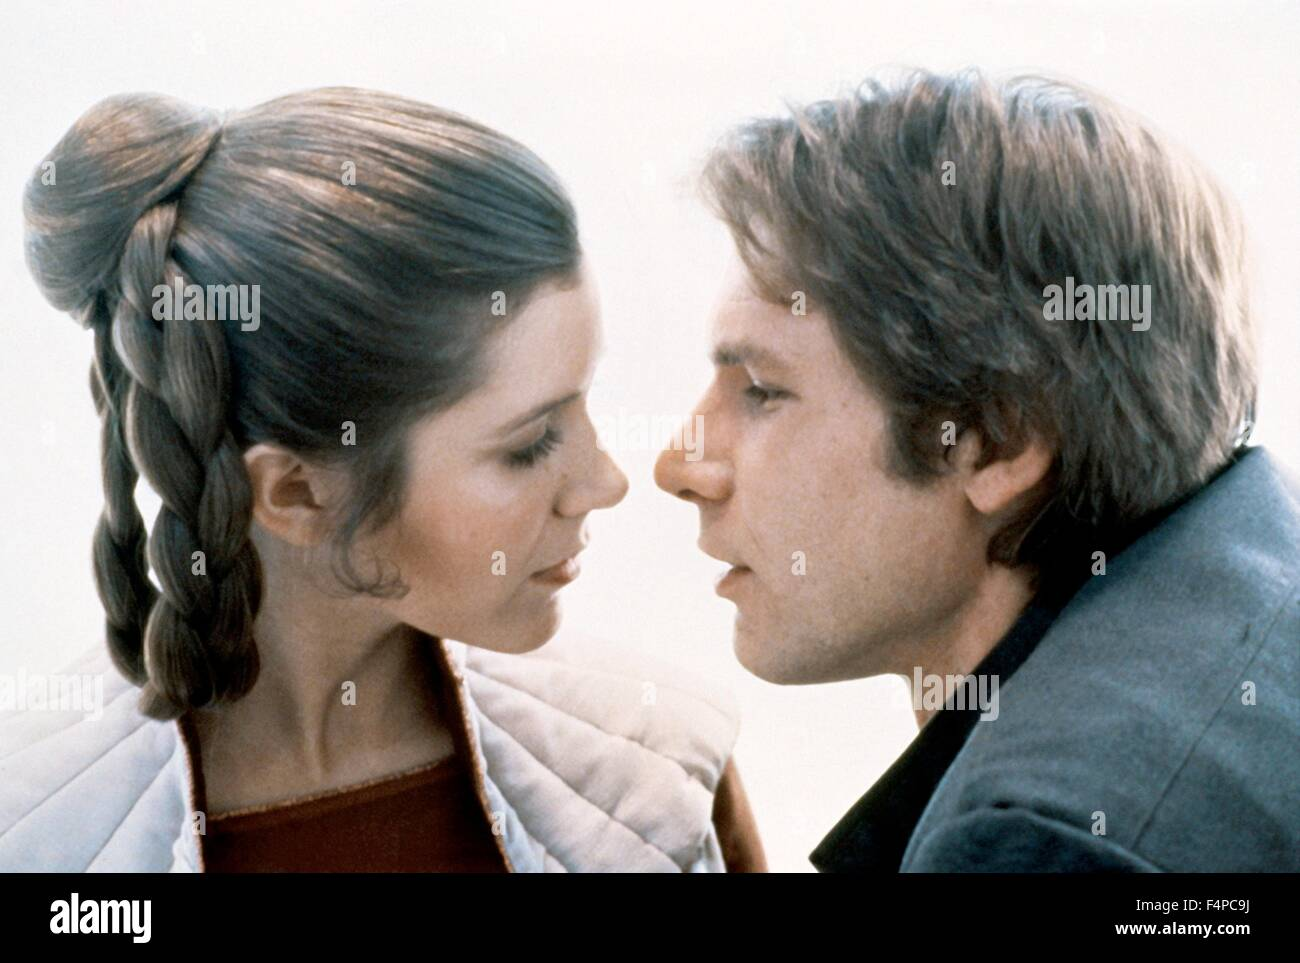 Carrie Fisher, Harrison Ford / Star Wars - The Empire Strikes Back 1980 directed by Irvin Kershner - Stock Image